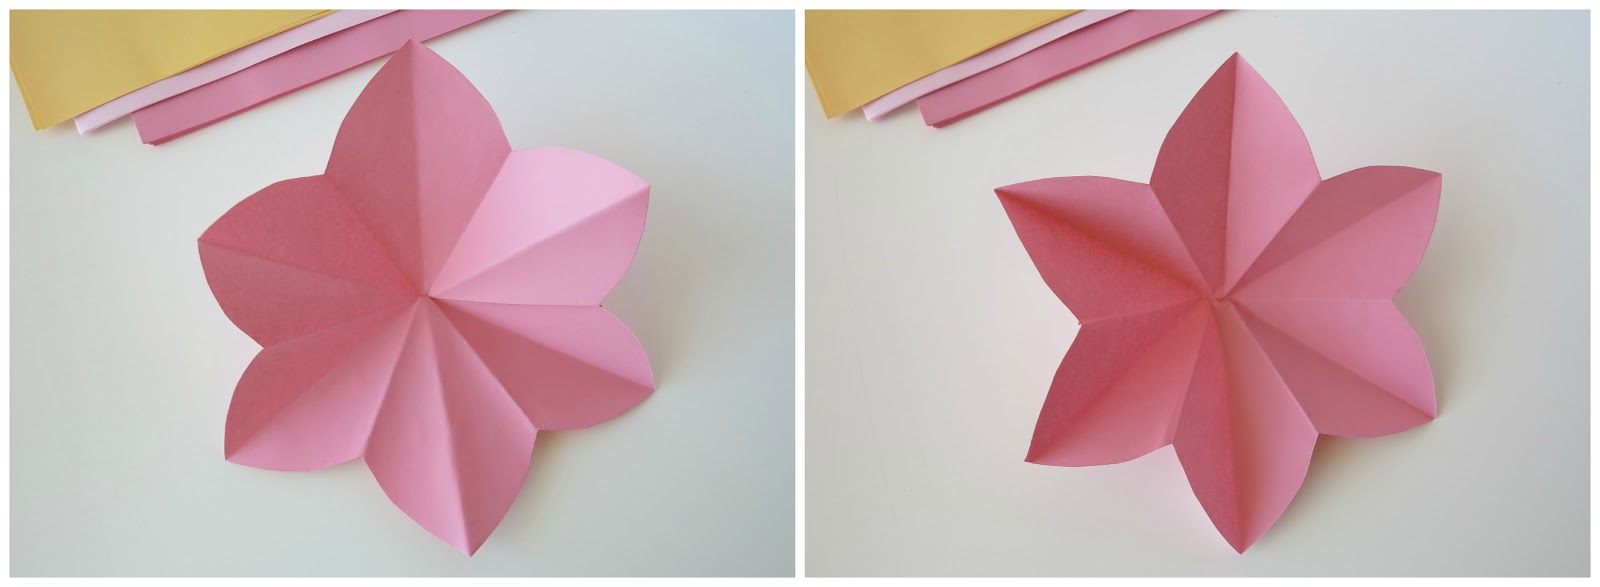 Ashlee rae designs paper flower tutorial the flower the creases wont be in the right places you will have to refold some of the creases so they alternate from mountain fold to valley fold mightylinksfo Choice Image